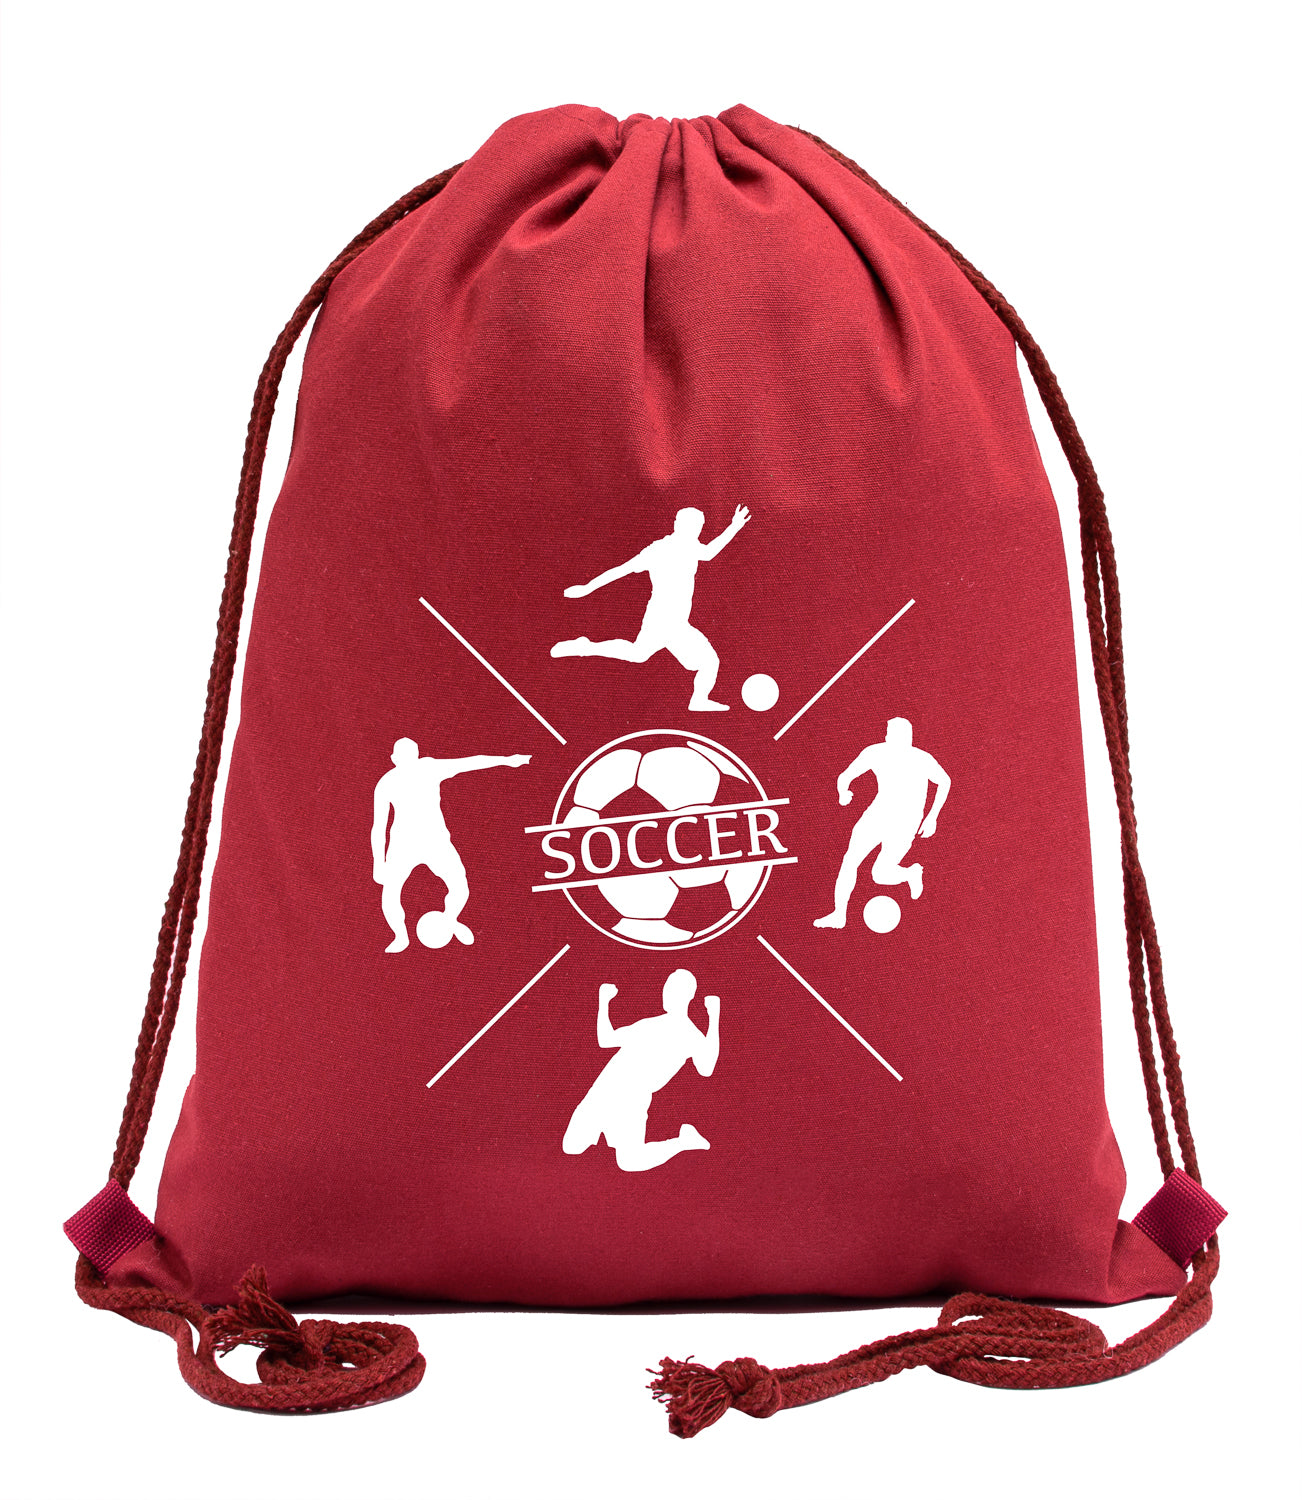 Soccer Players in Action Cotton Drawstring Bag